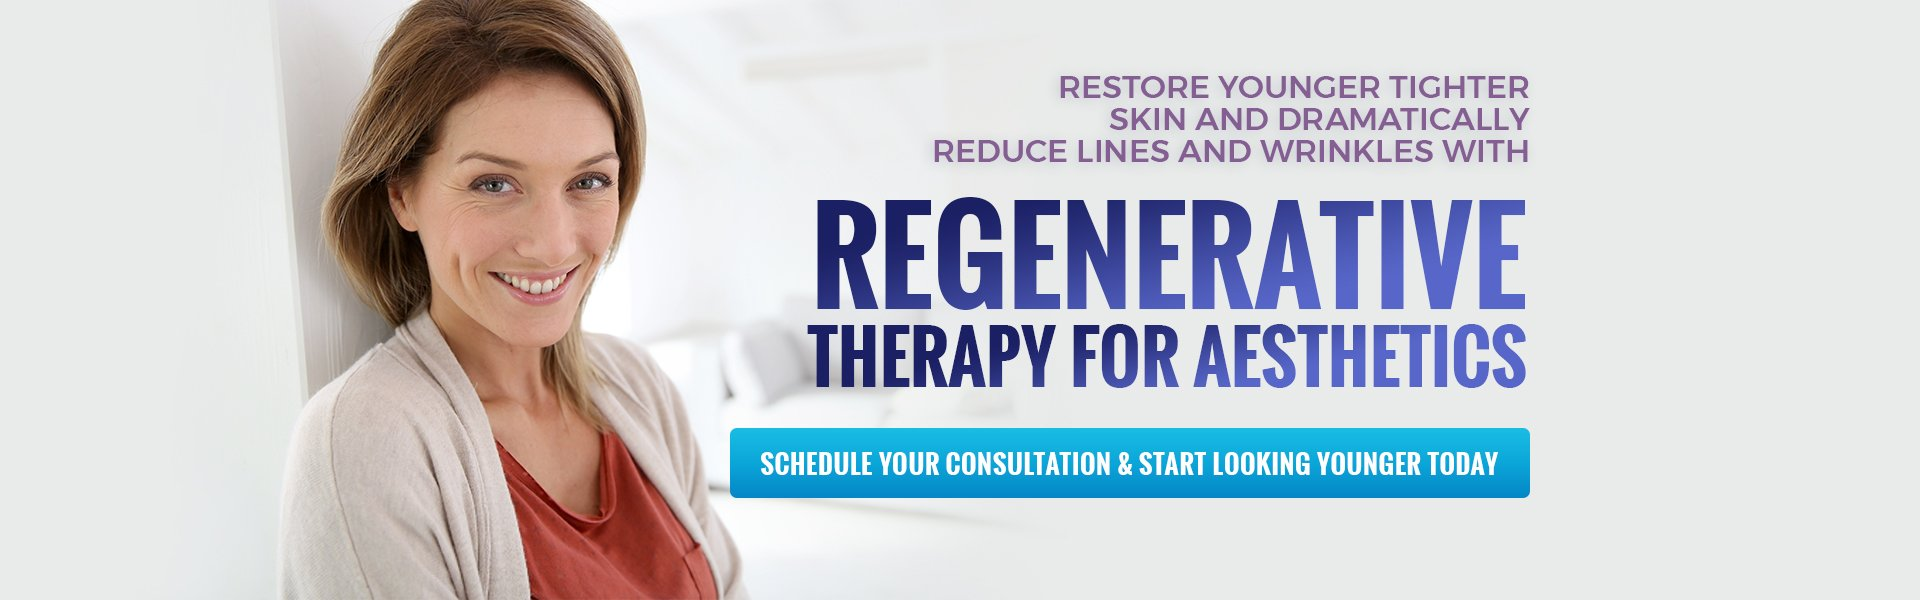 Regenerative Therapy for Asthetics